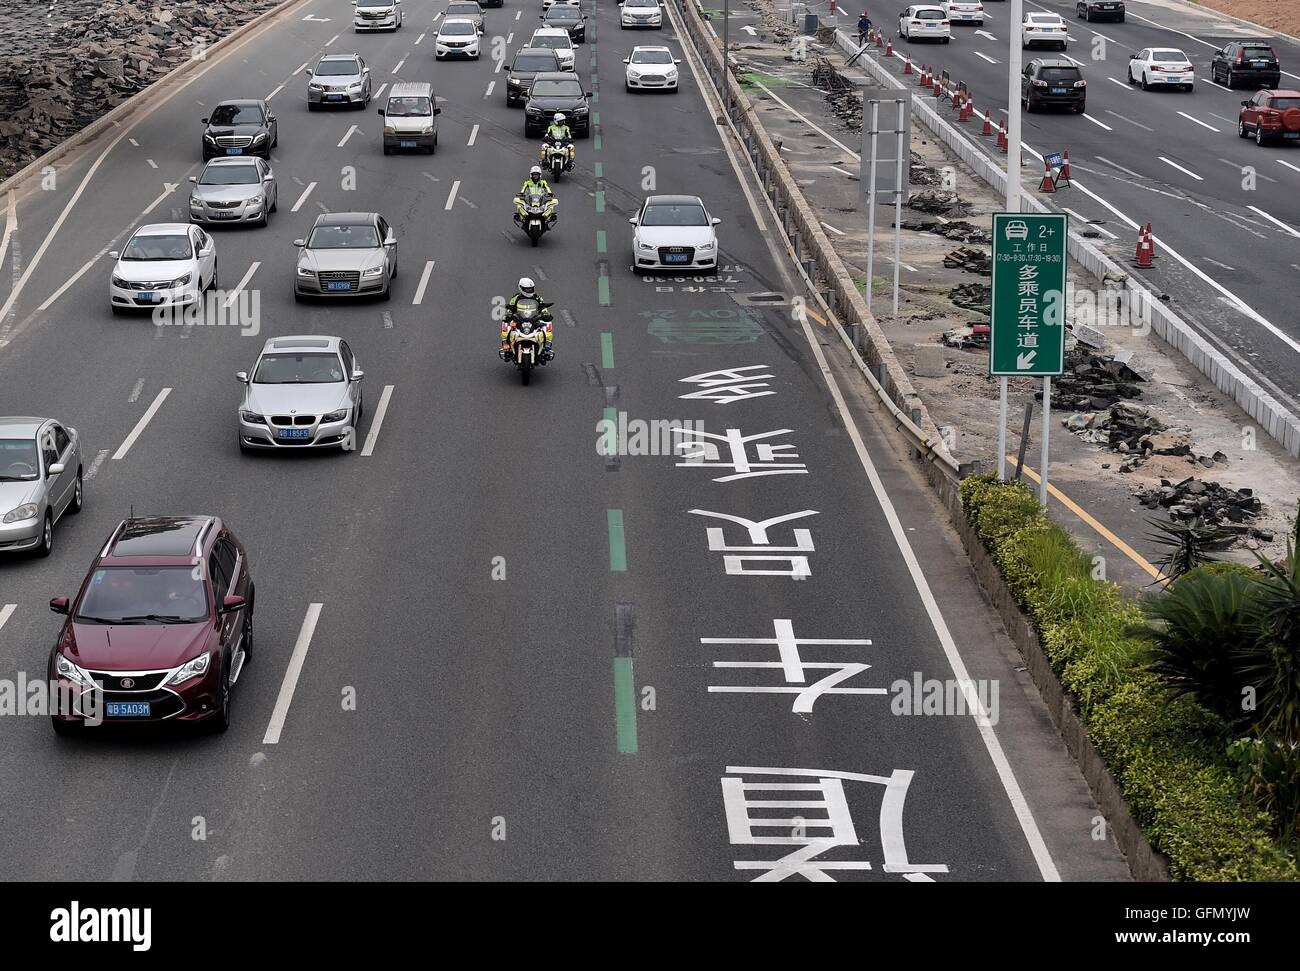 Carpool Lane Rules >> Carpool Lane Traffic Stock Photos Carpool Lane Traffic